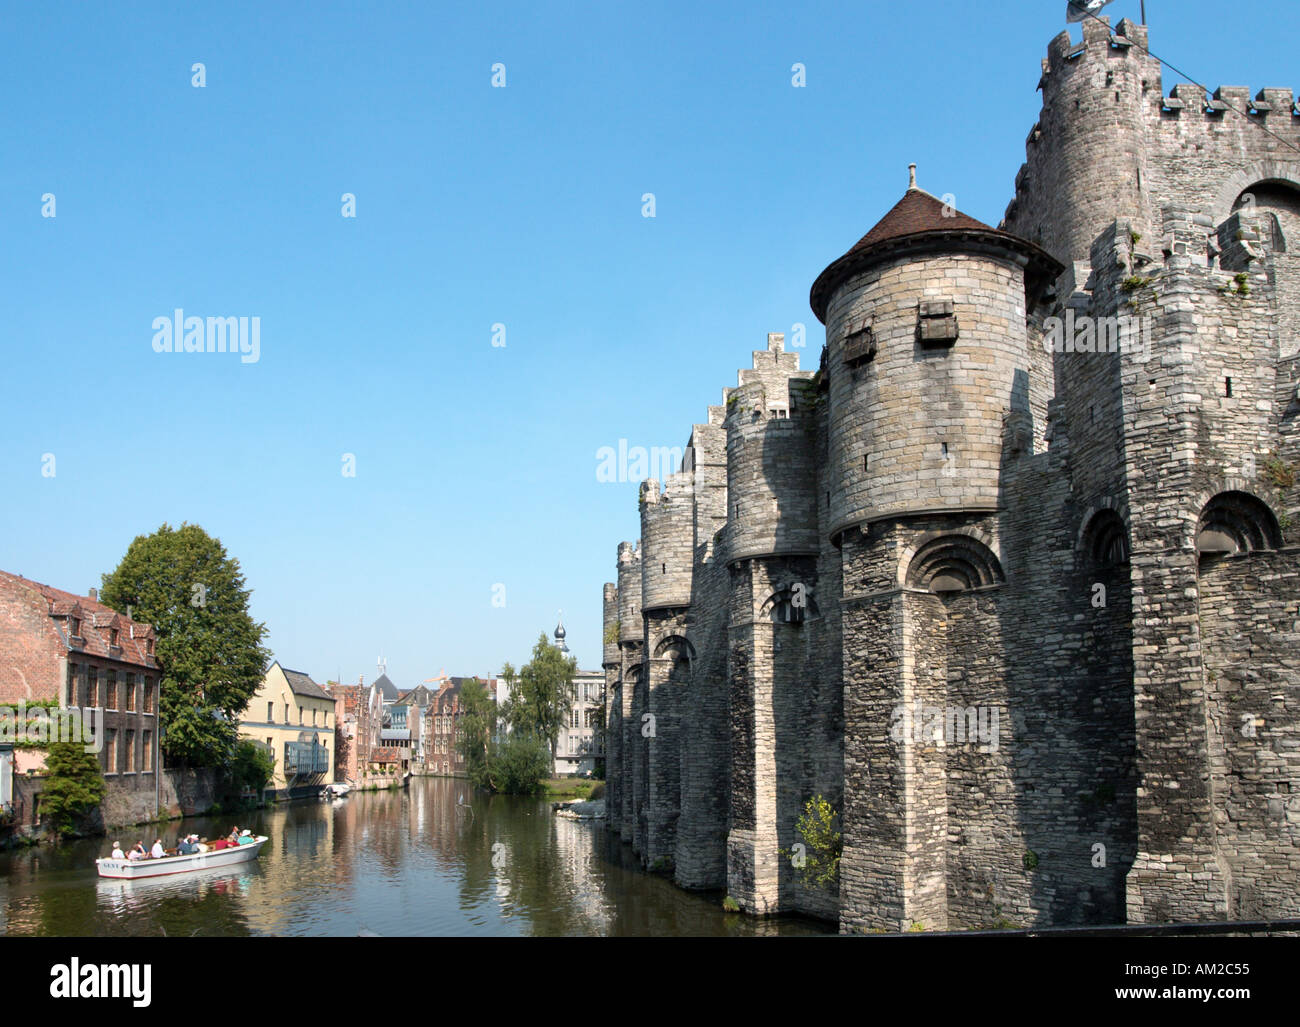 Gravensteen and excursion boat on the Lieve Canal, Ghent, Belgium - Stock Image